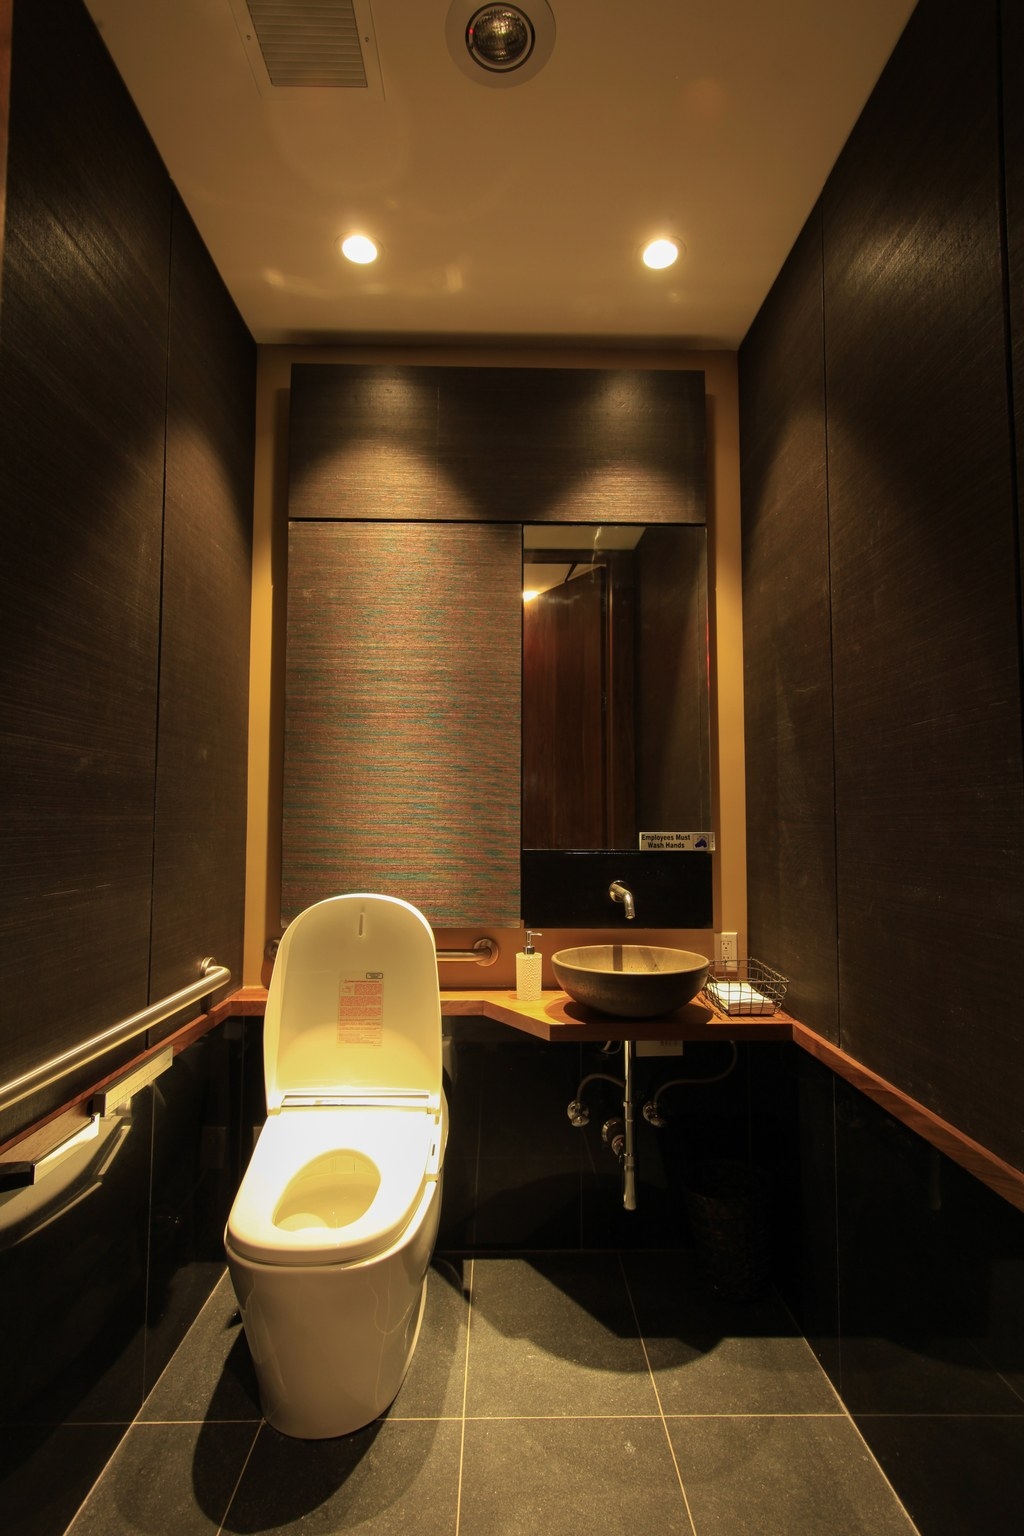 What Makes a Restaurant Bathroom Memorable?  Lightspeed POS